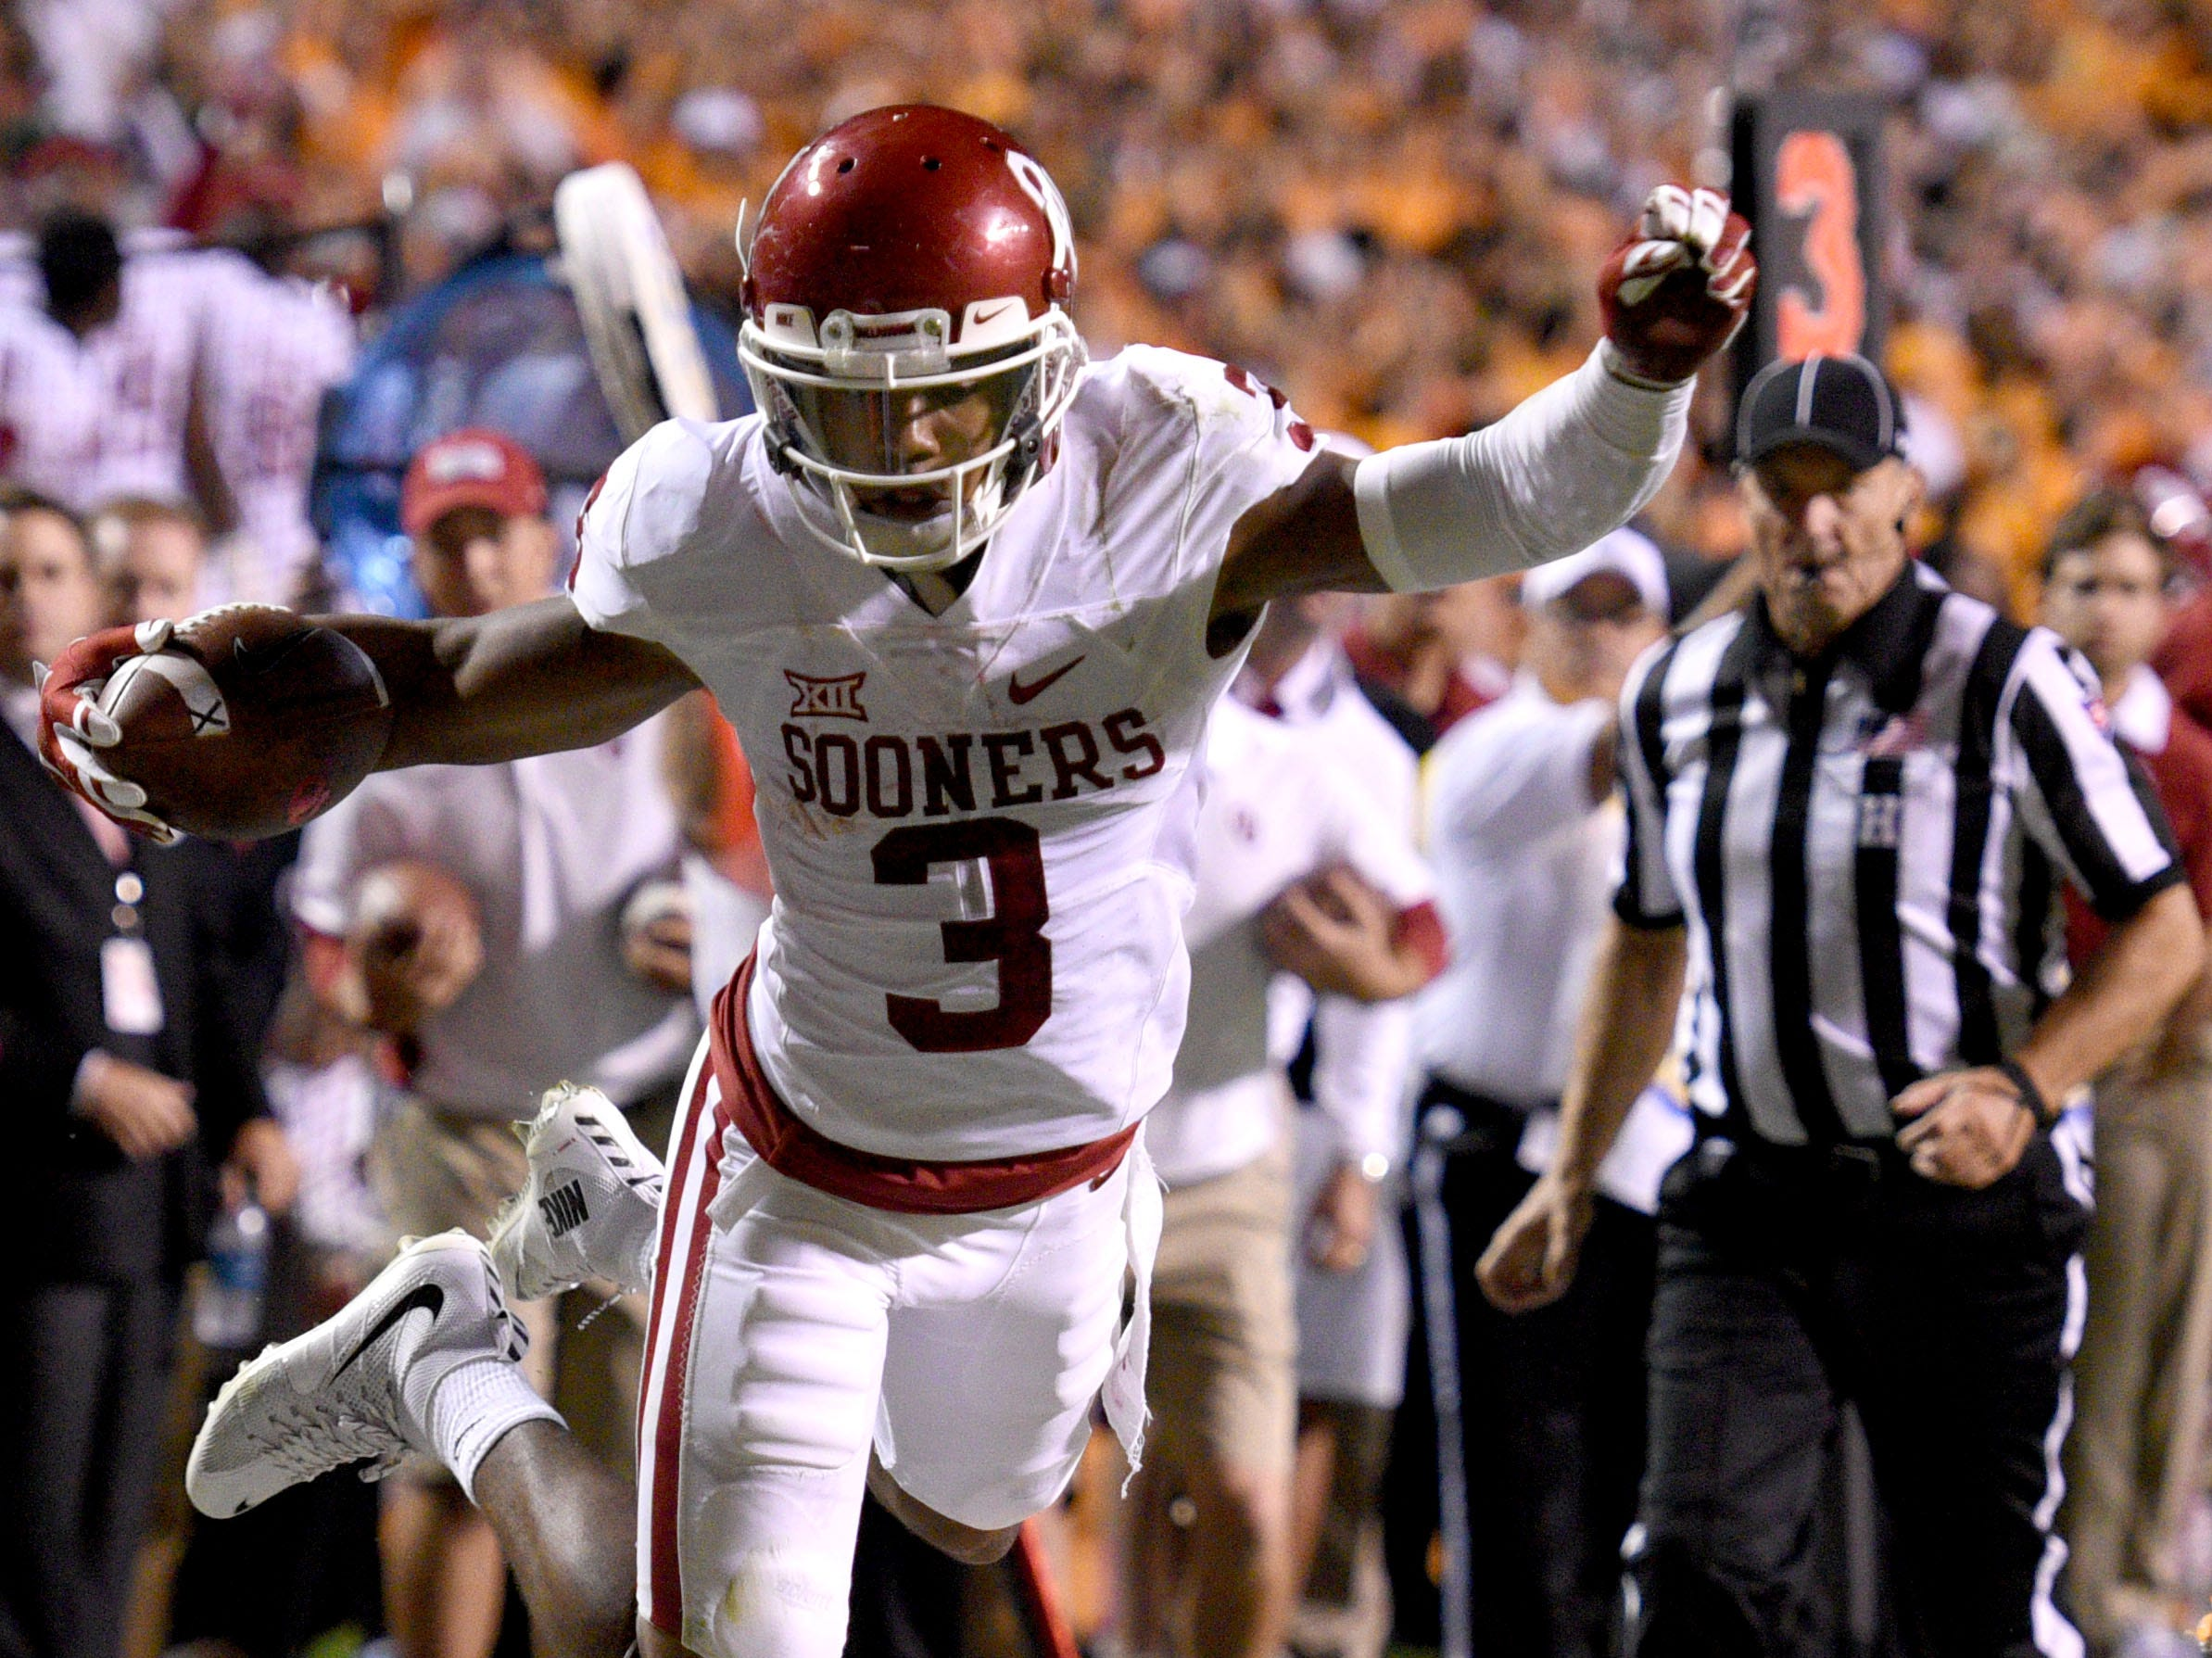 Oklahoma wide receiver Sterling Shepard (3) dives over Tennessee defensive back Brian Randolph (37) for a touchdown to win the game 31-24 at Neyland Stadium on Saturday, Sept. 12, 2015 in Knoxville, Tenn.